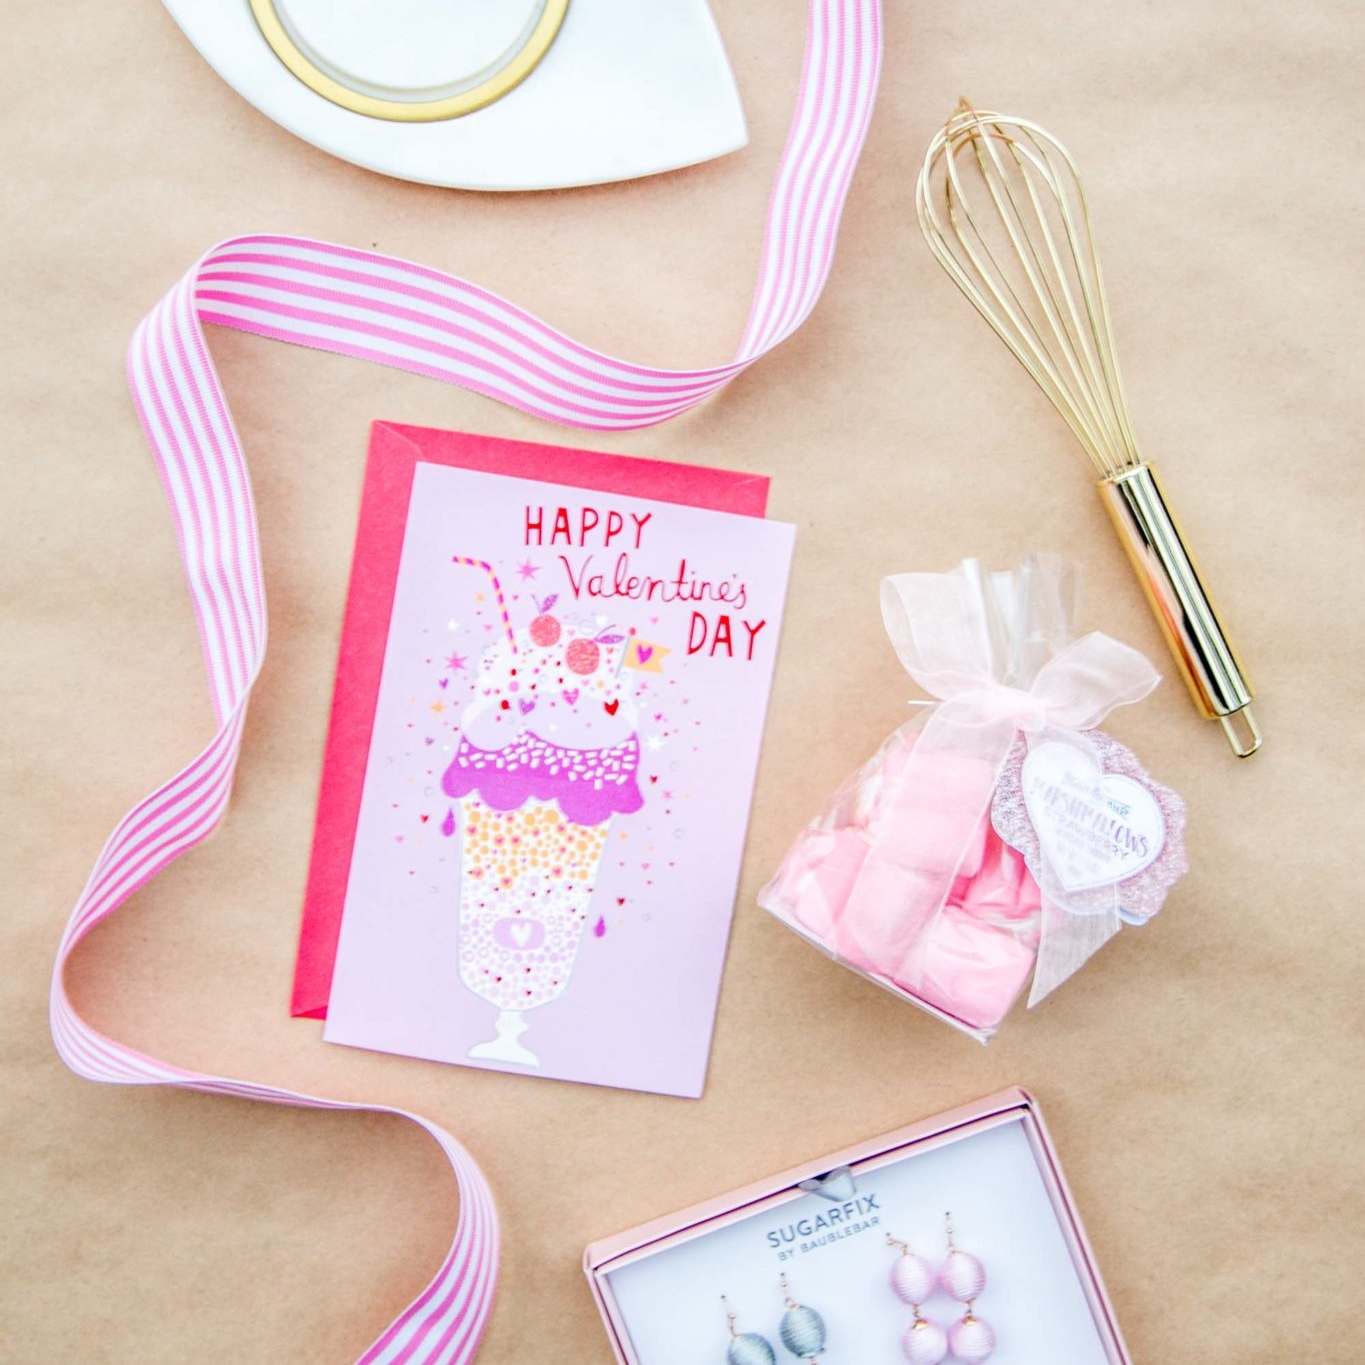 Valentine's Day Cards & Gifts